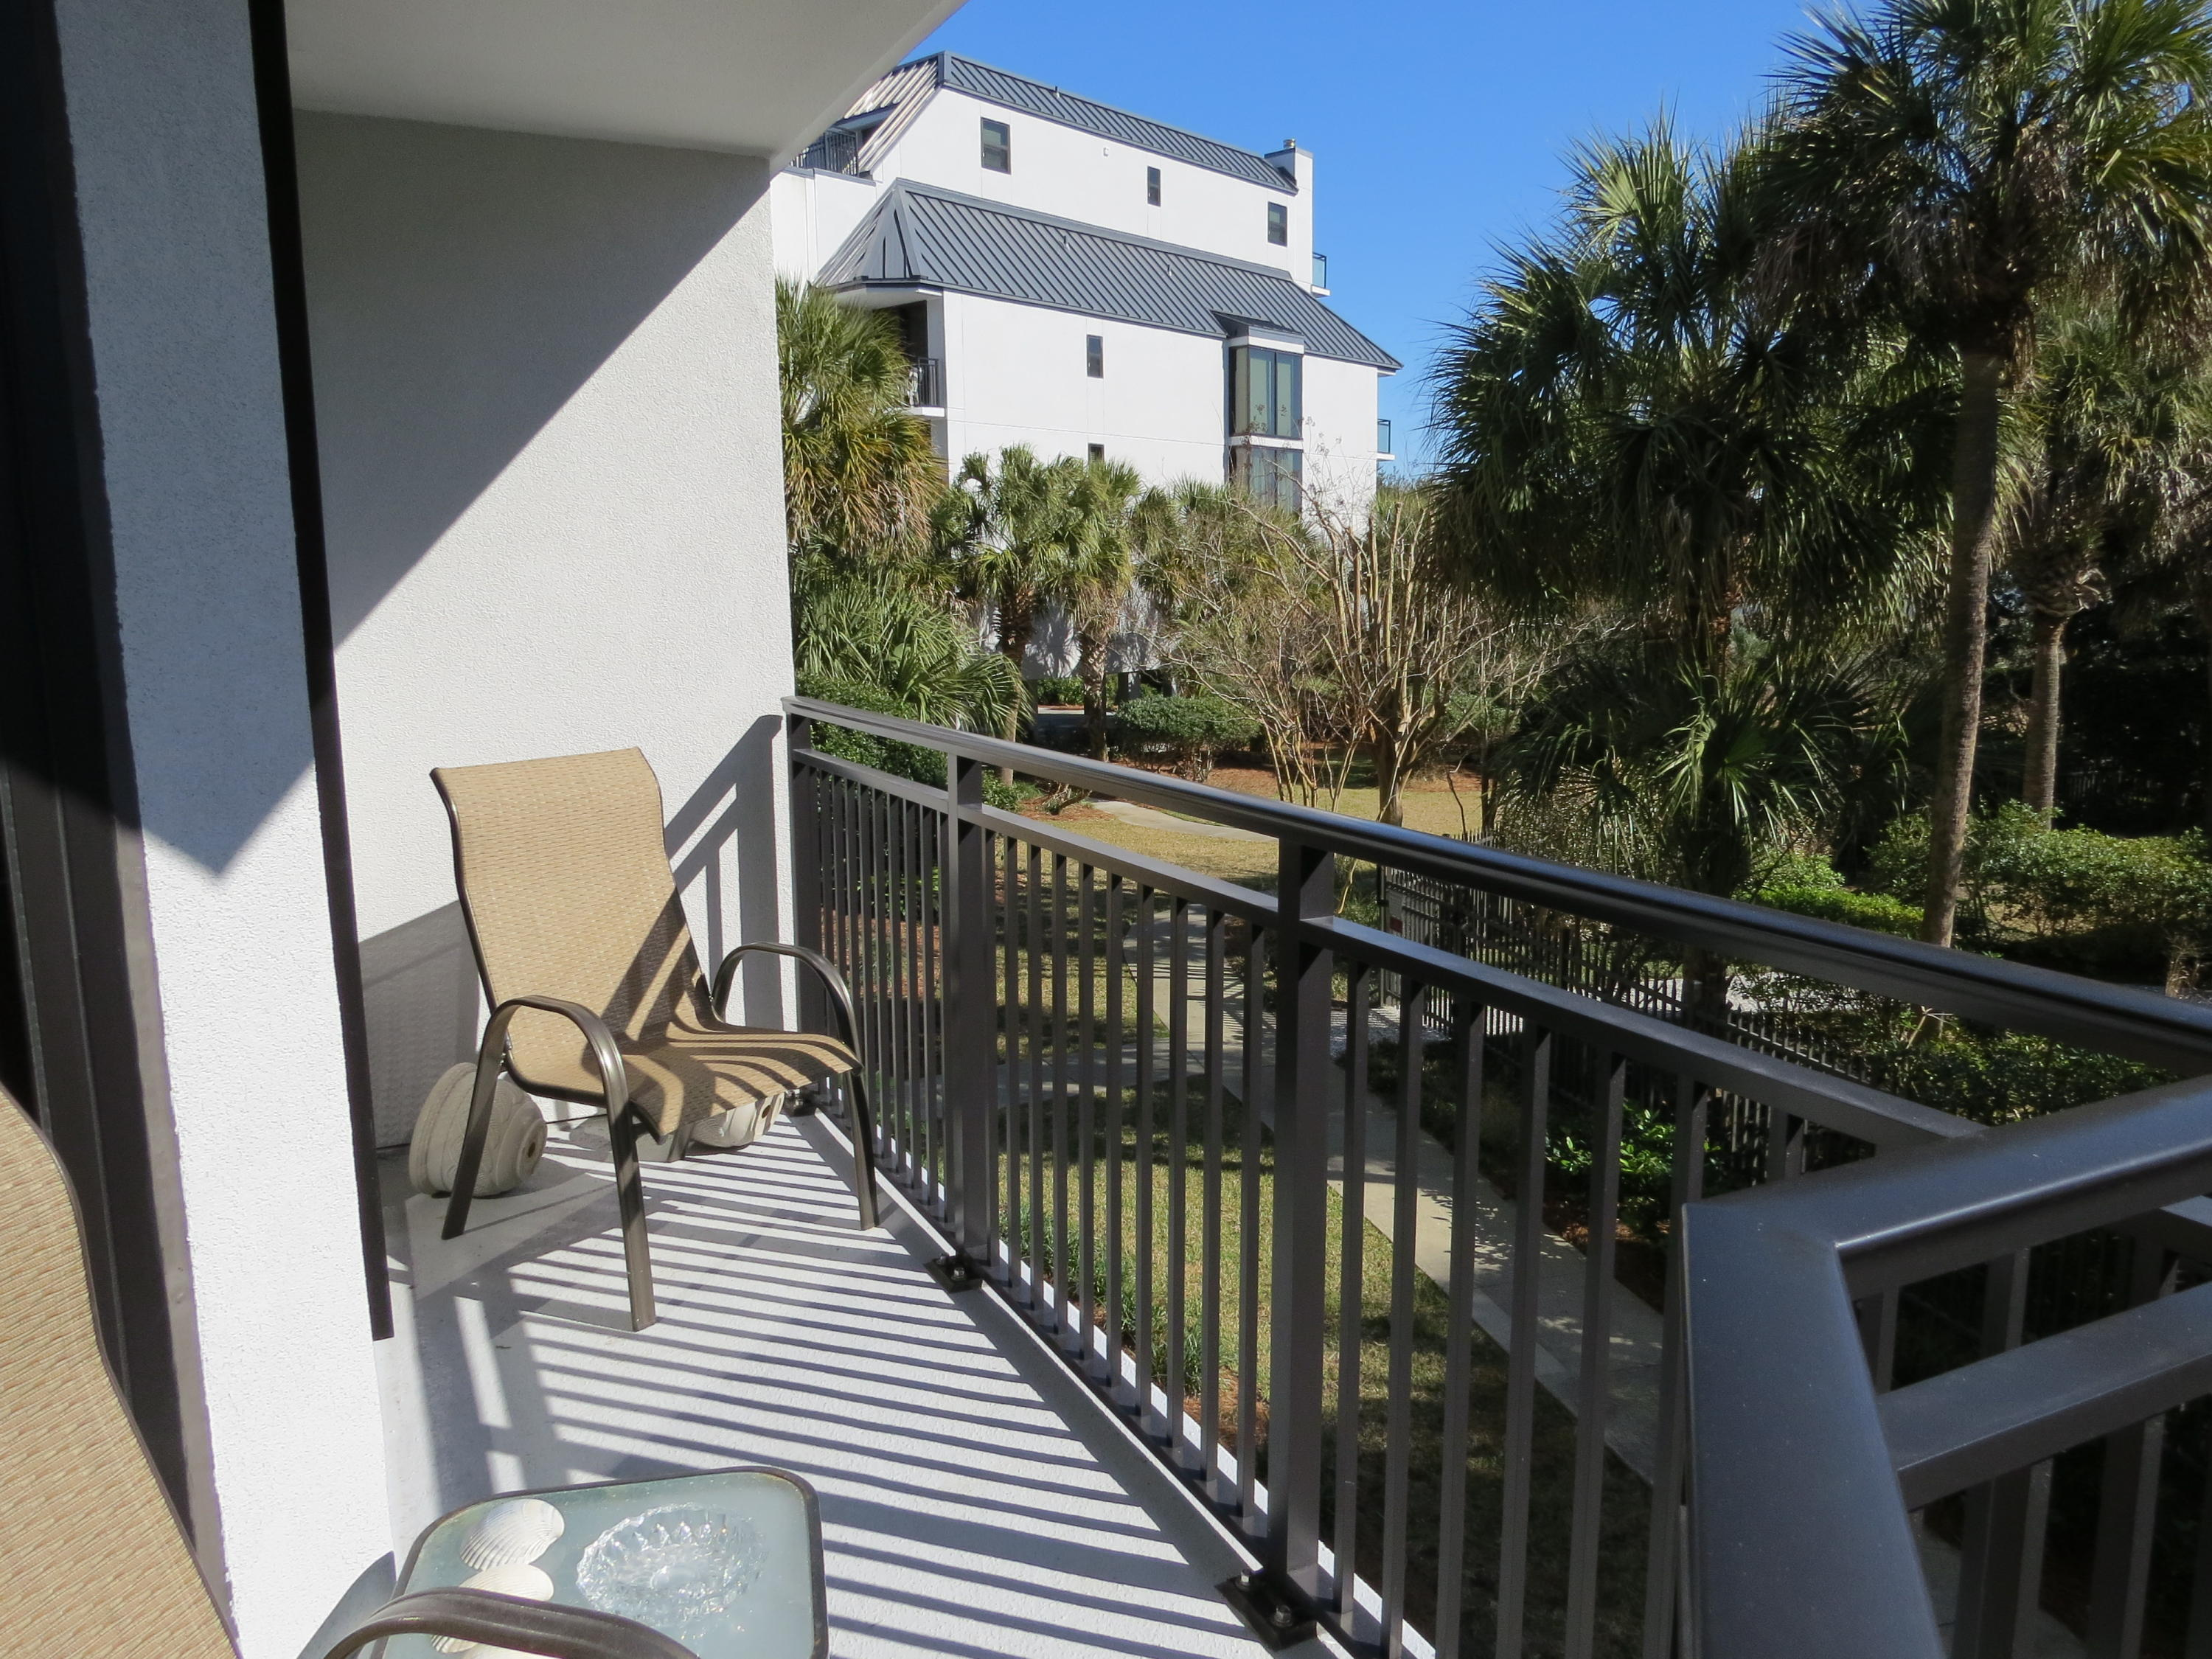 C-117 Shipwatch Villa Isle Of Palms, SC 29451